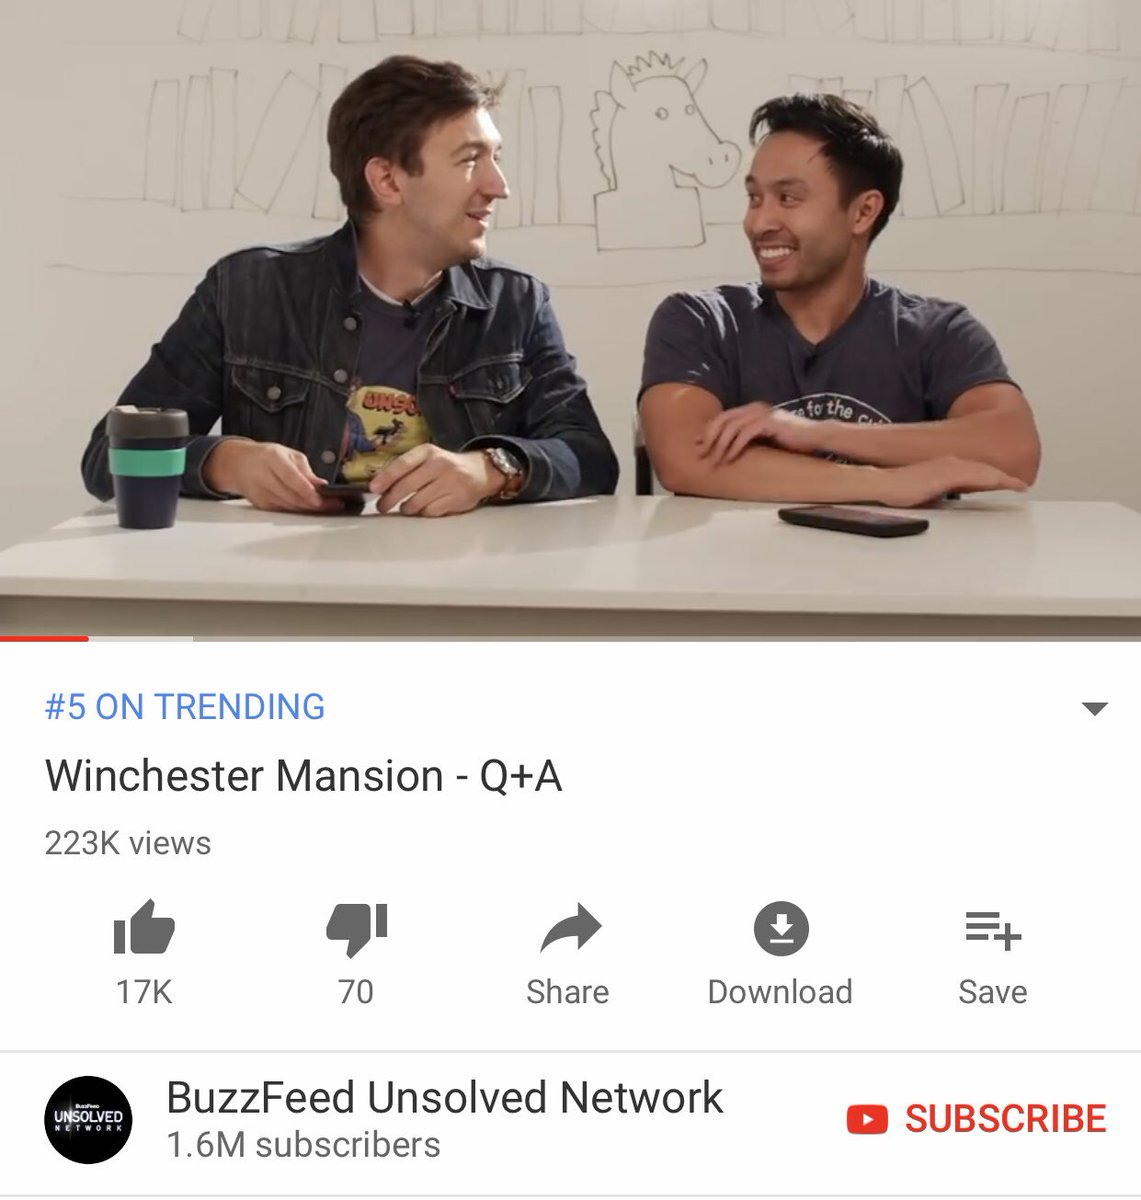 buzzfeed unsolved (@unsolvedmoments) | Twitter